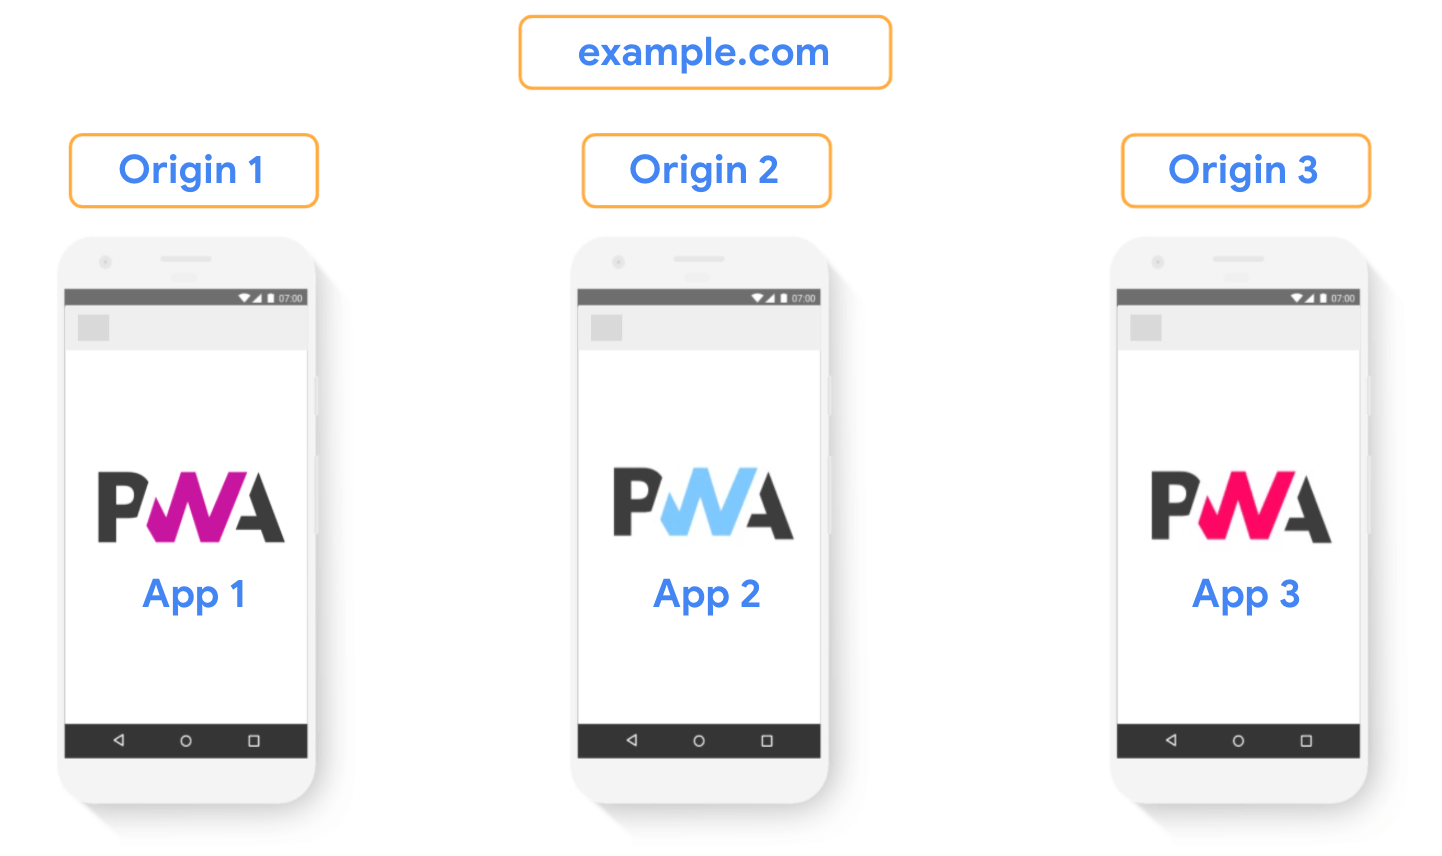 Avoid using different origins for site sections of the same site when trying to build a unified Progresive Web App.